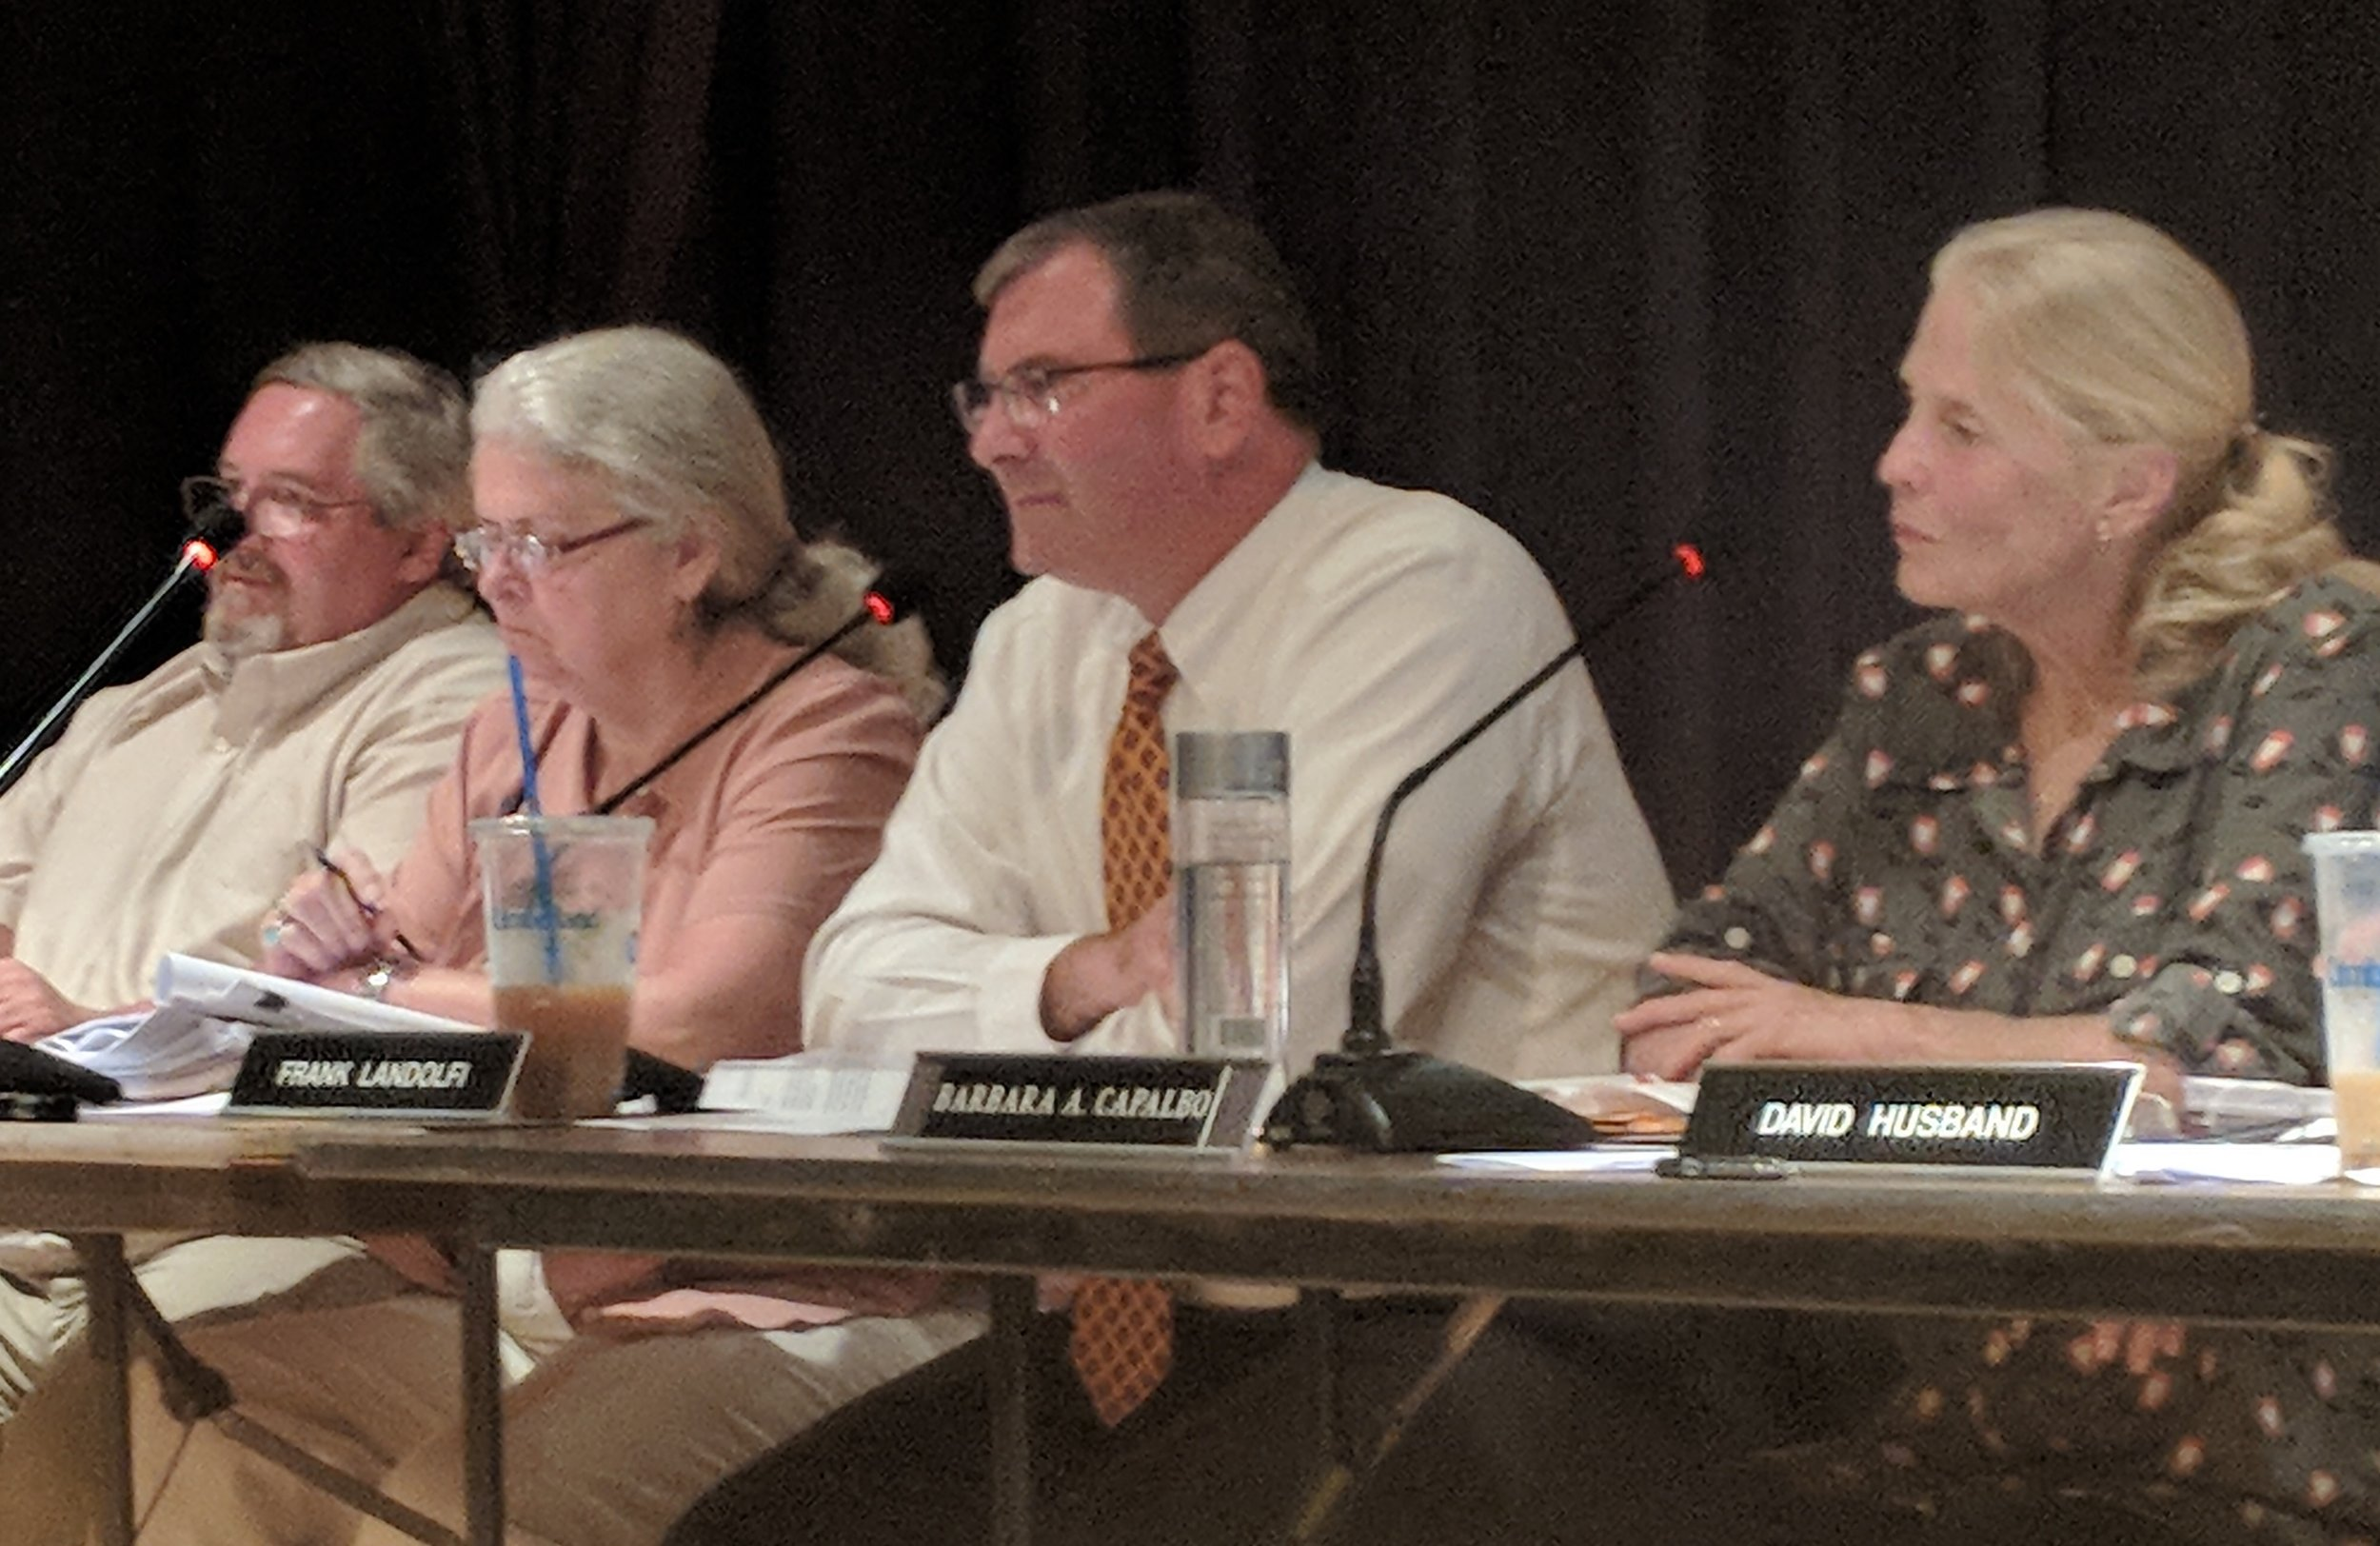 The Hopkinton Town Council has several commercial solar projects to consider. (Tim Faulkner/ecoRI News photos)